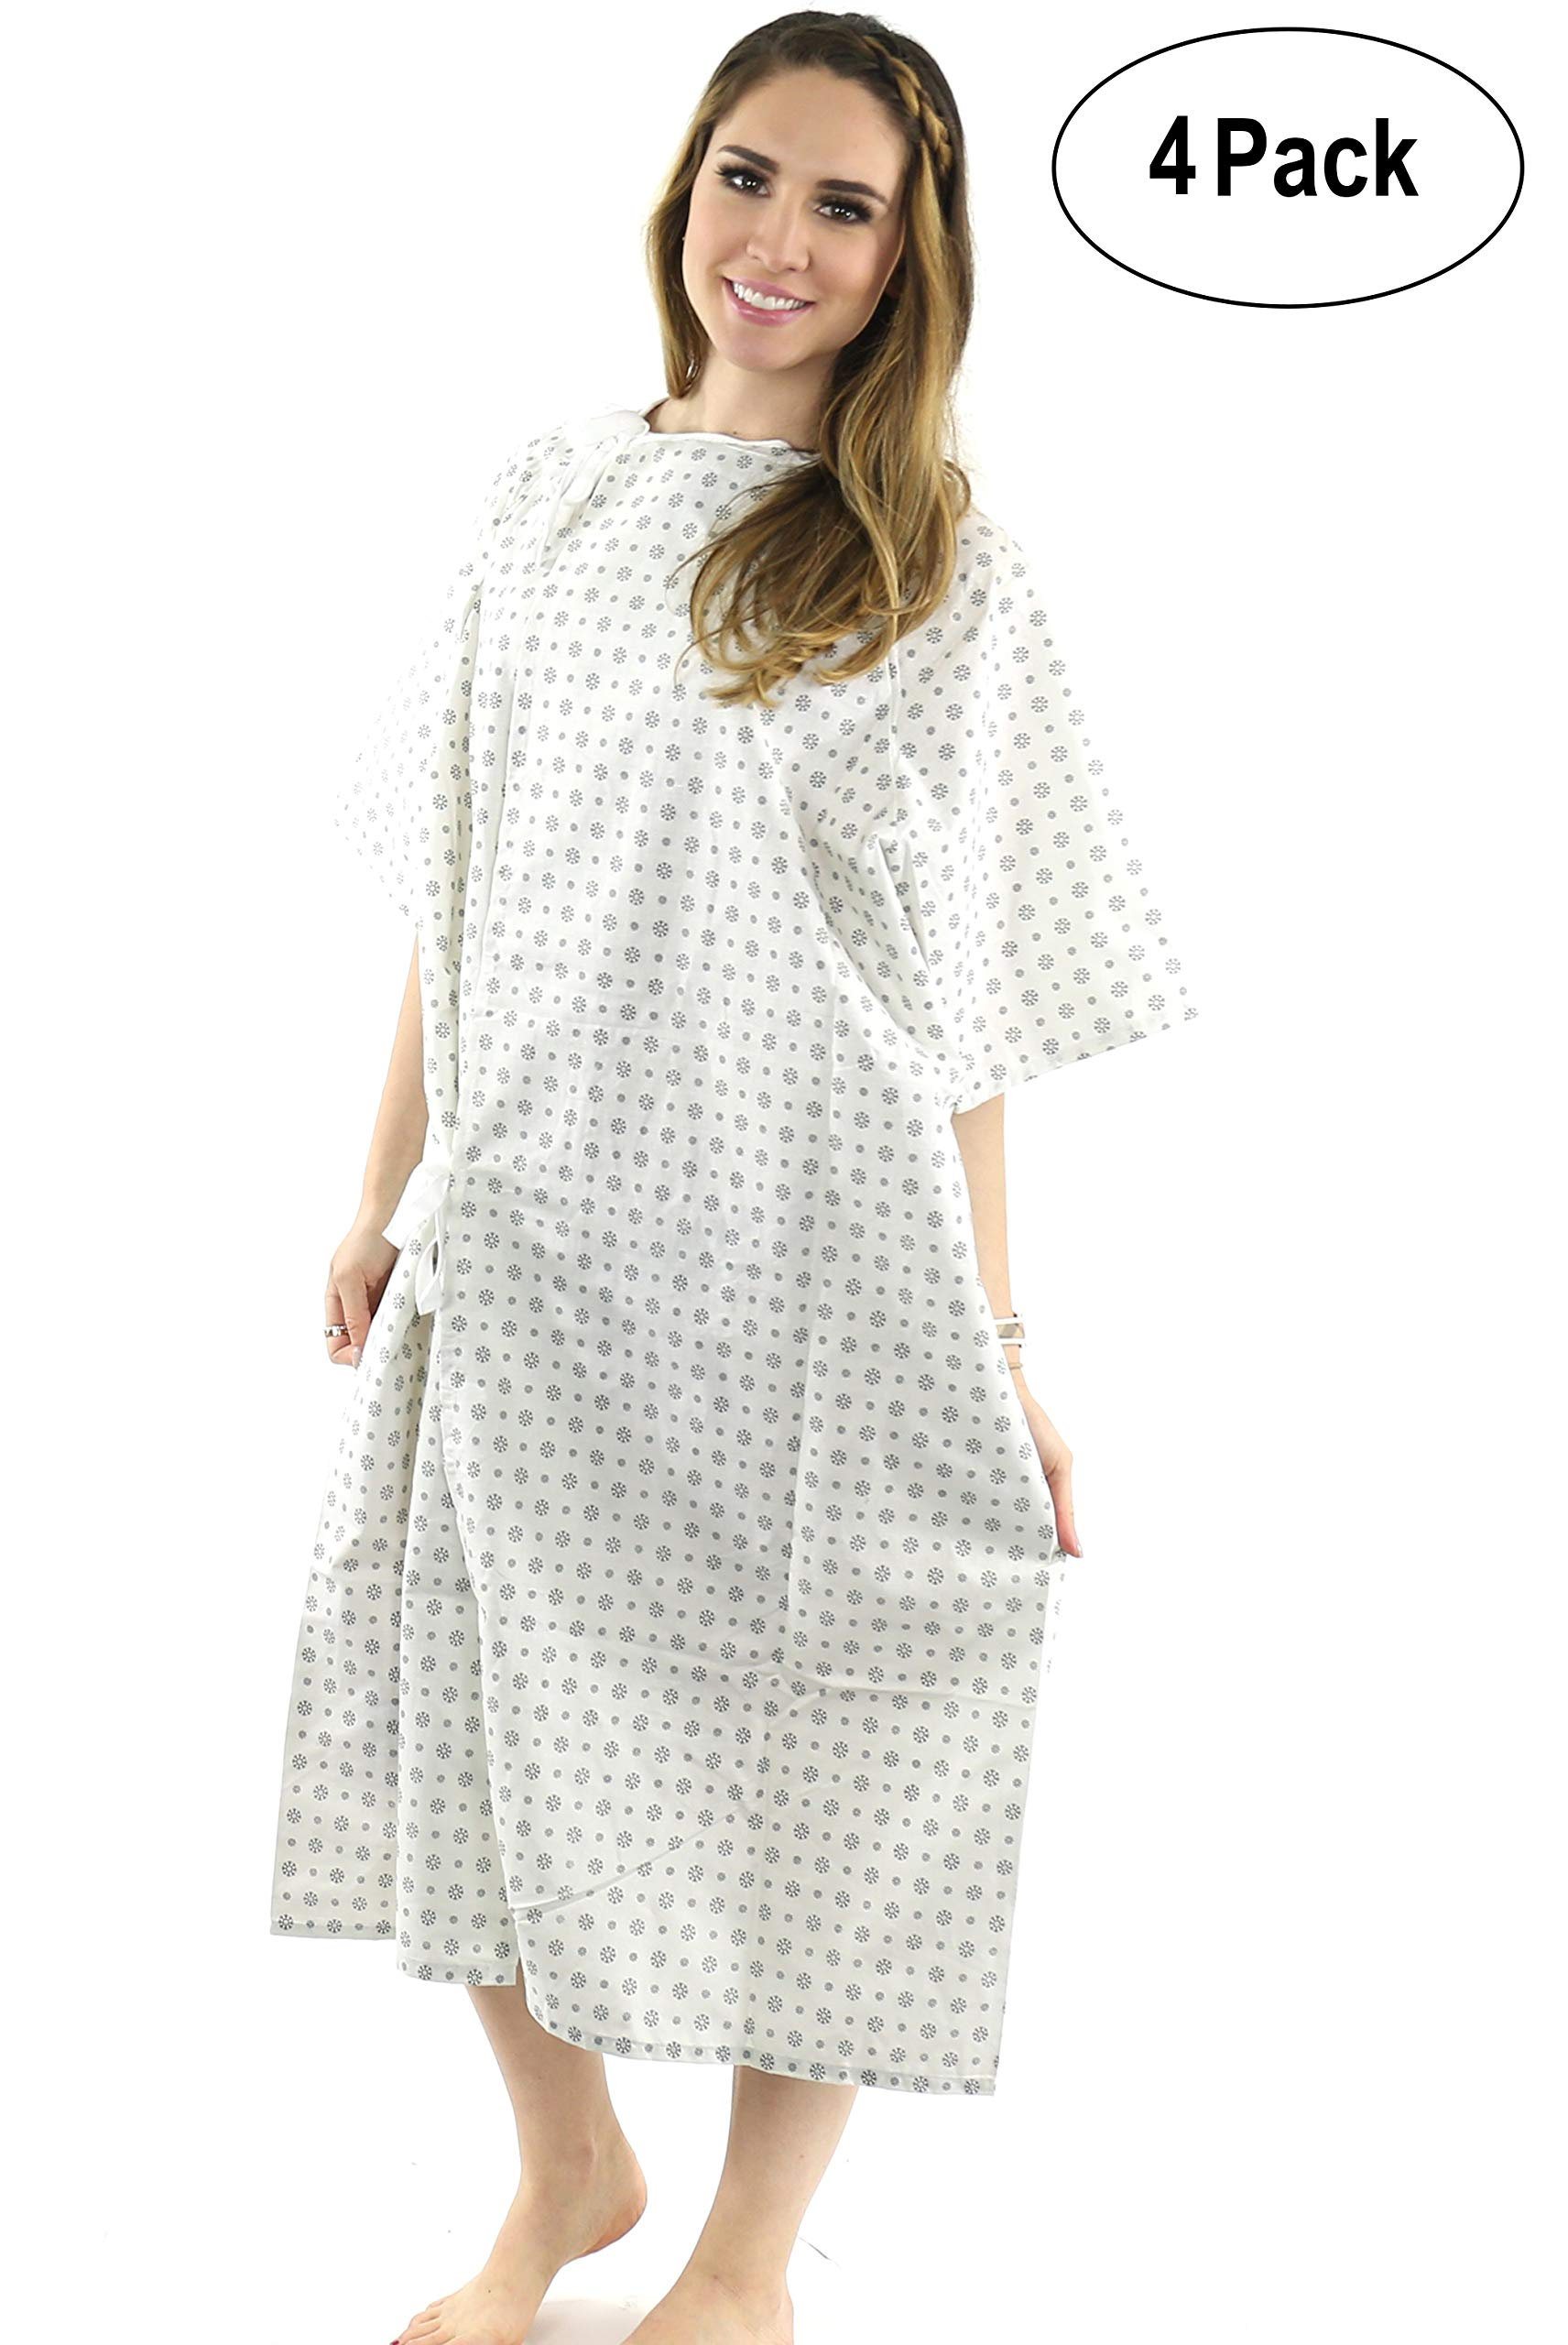 Hospital Gown (4 Pack) Cotton Blend, Useful, Fashionable Patient Gowns, Back Tie, 46'' Long & 66'' Wide, Fits All Sizes to 2XL Sizes Fit Comfortably - Hospital Gown (4 Pack) by Magnus Care